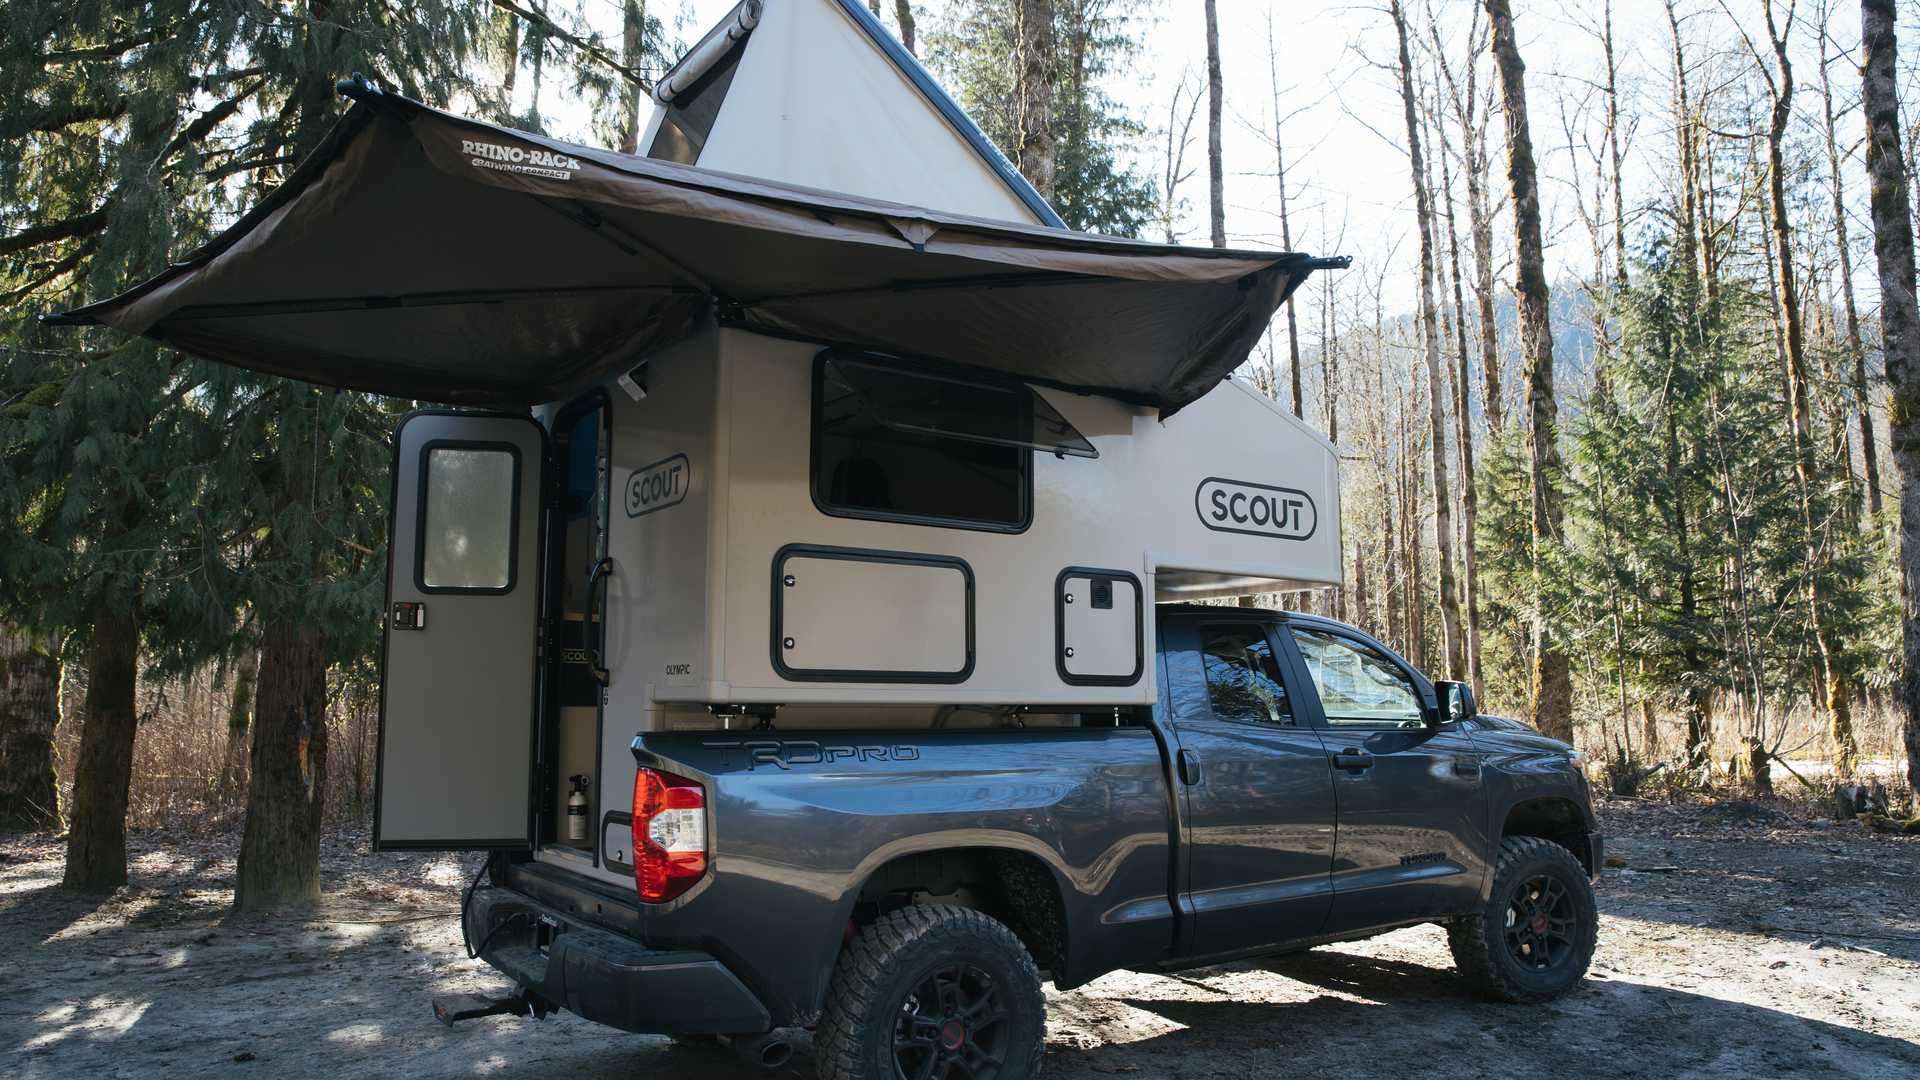 Scout Campers Launches With Minimalist Olympic Drop In Truck Shell